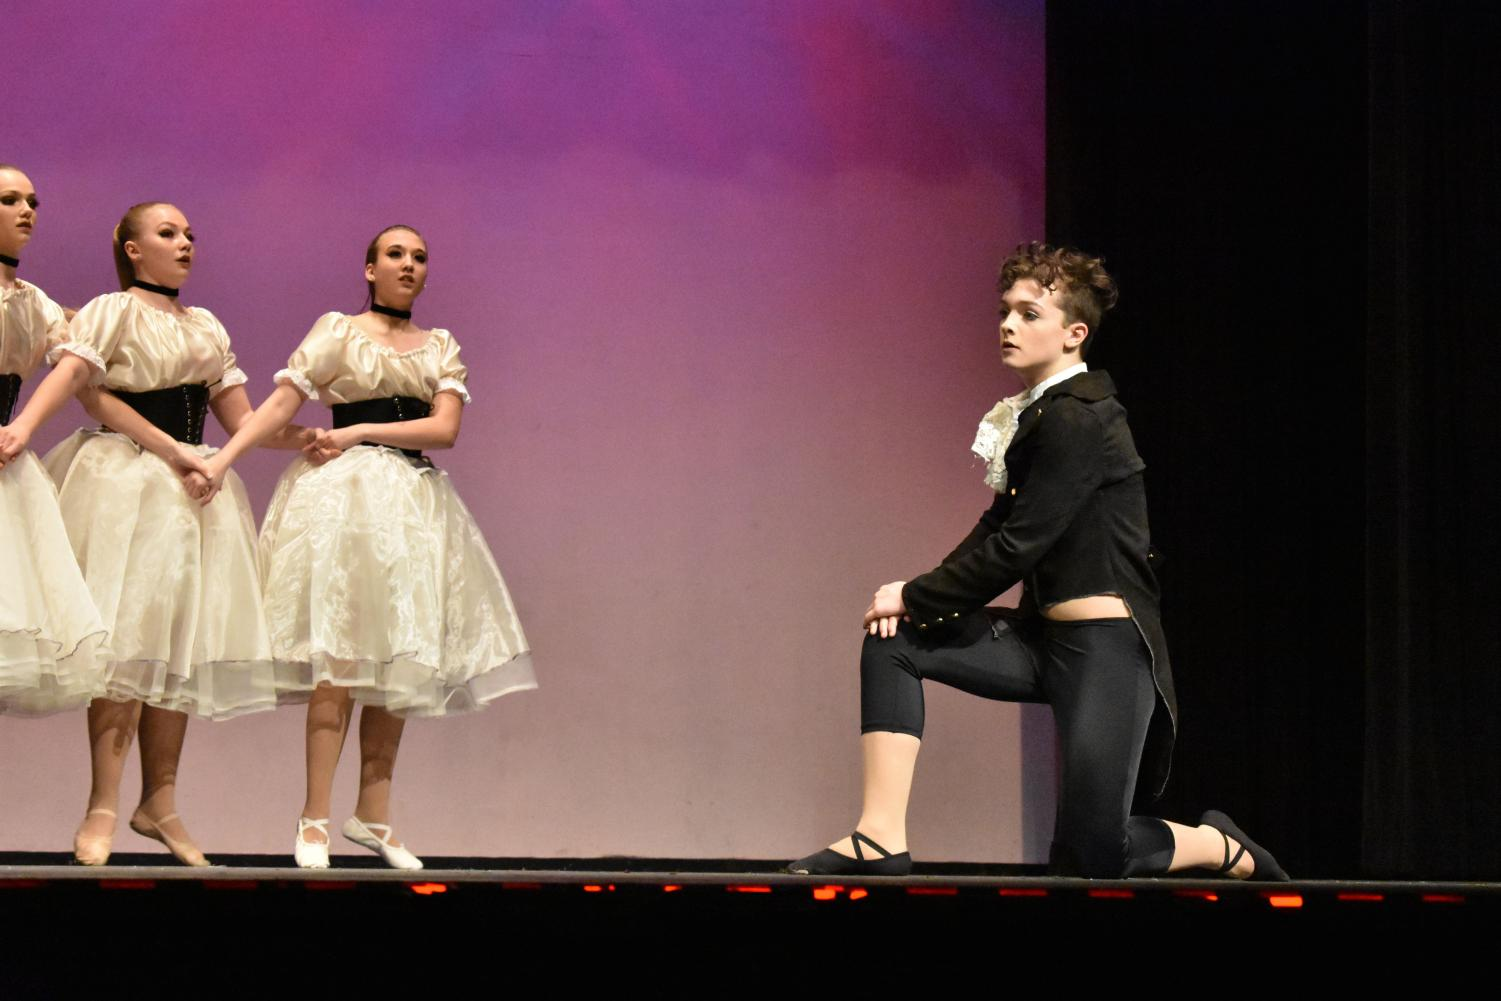 Sophomores Haylie Steinkraus, Makenna Allison and freshman Joshua Pena preform at a dance recital in Chelsea, describing a painting by Edgar Degas, a French painter from the mid-1800s who frequently painted ballet dancers.